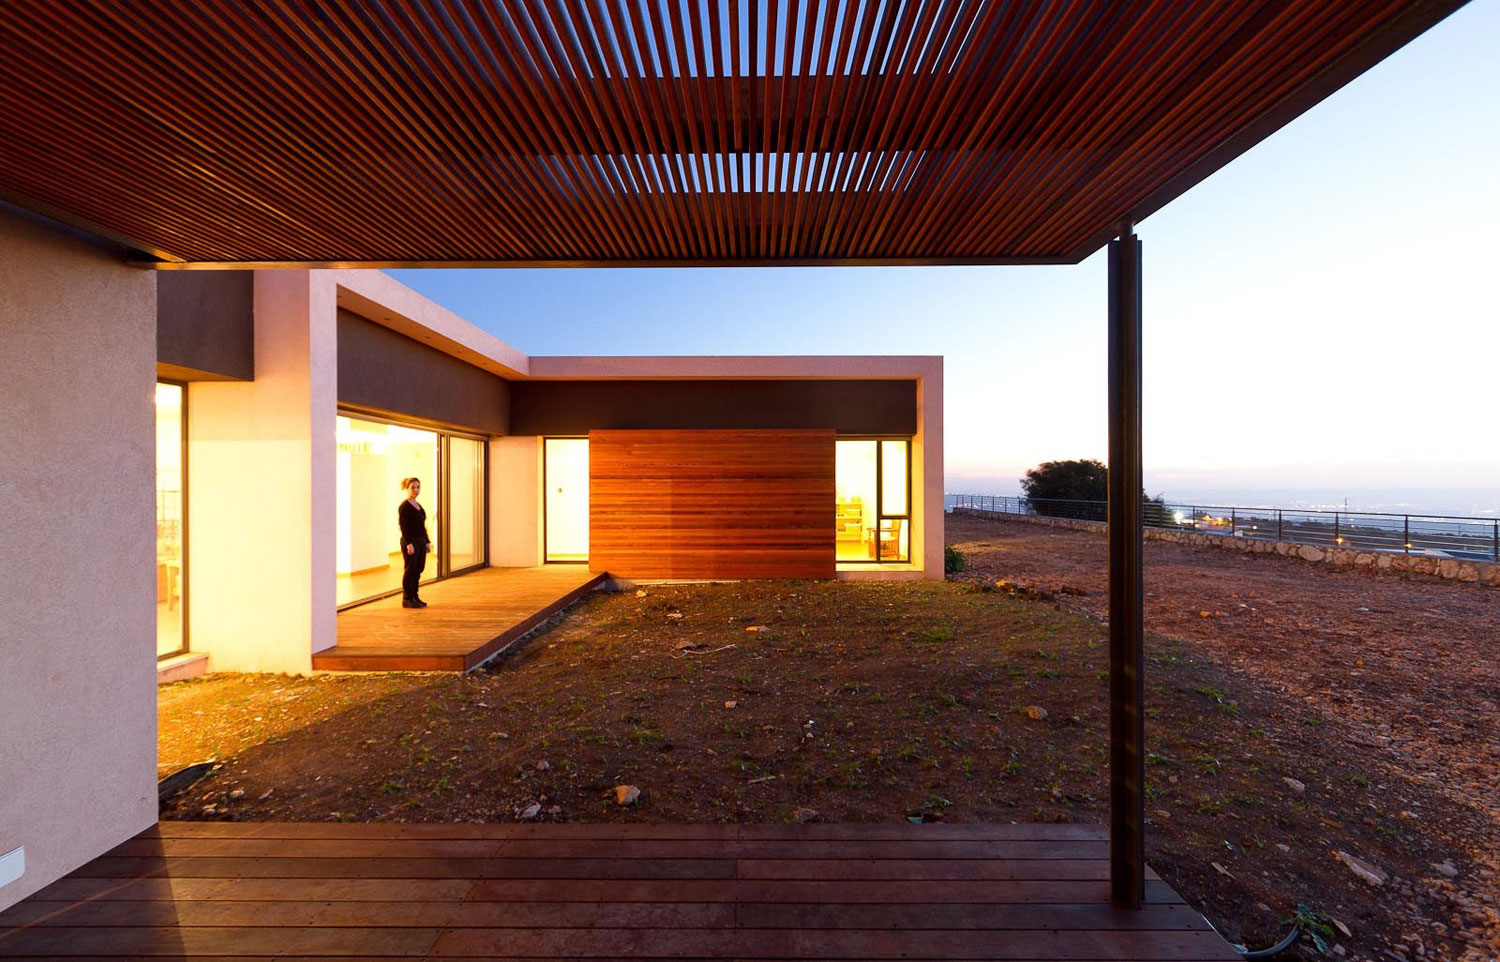 Schiller Residence by SaaB Architects